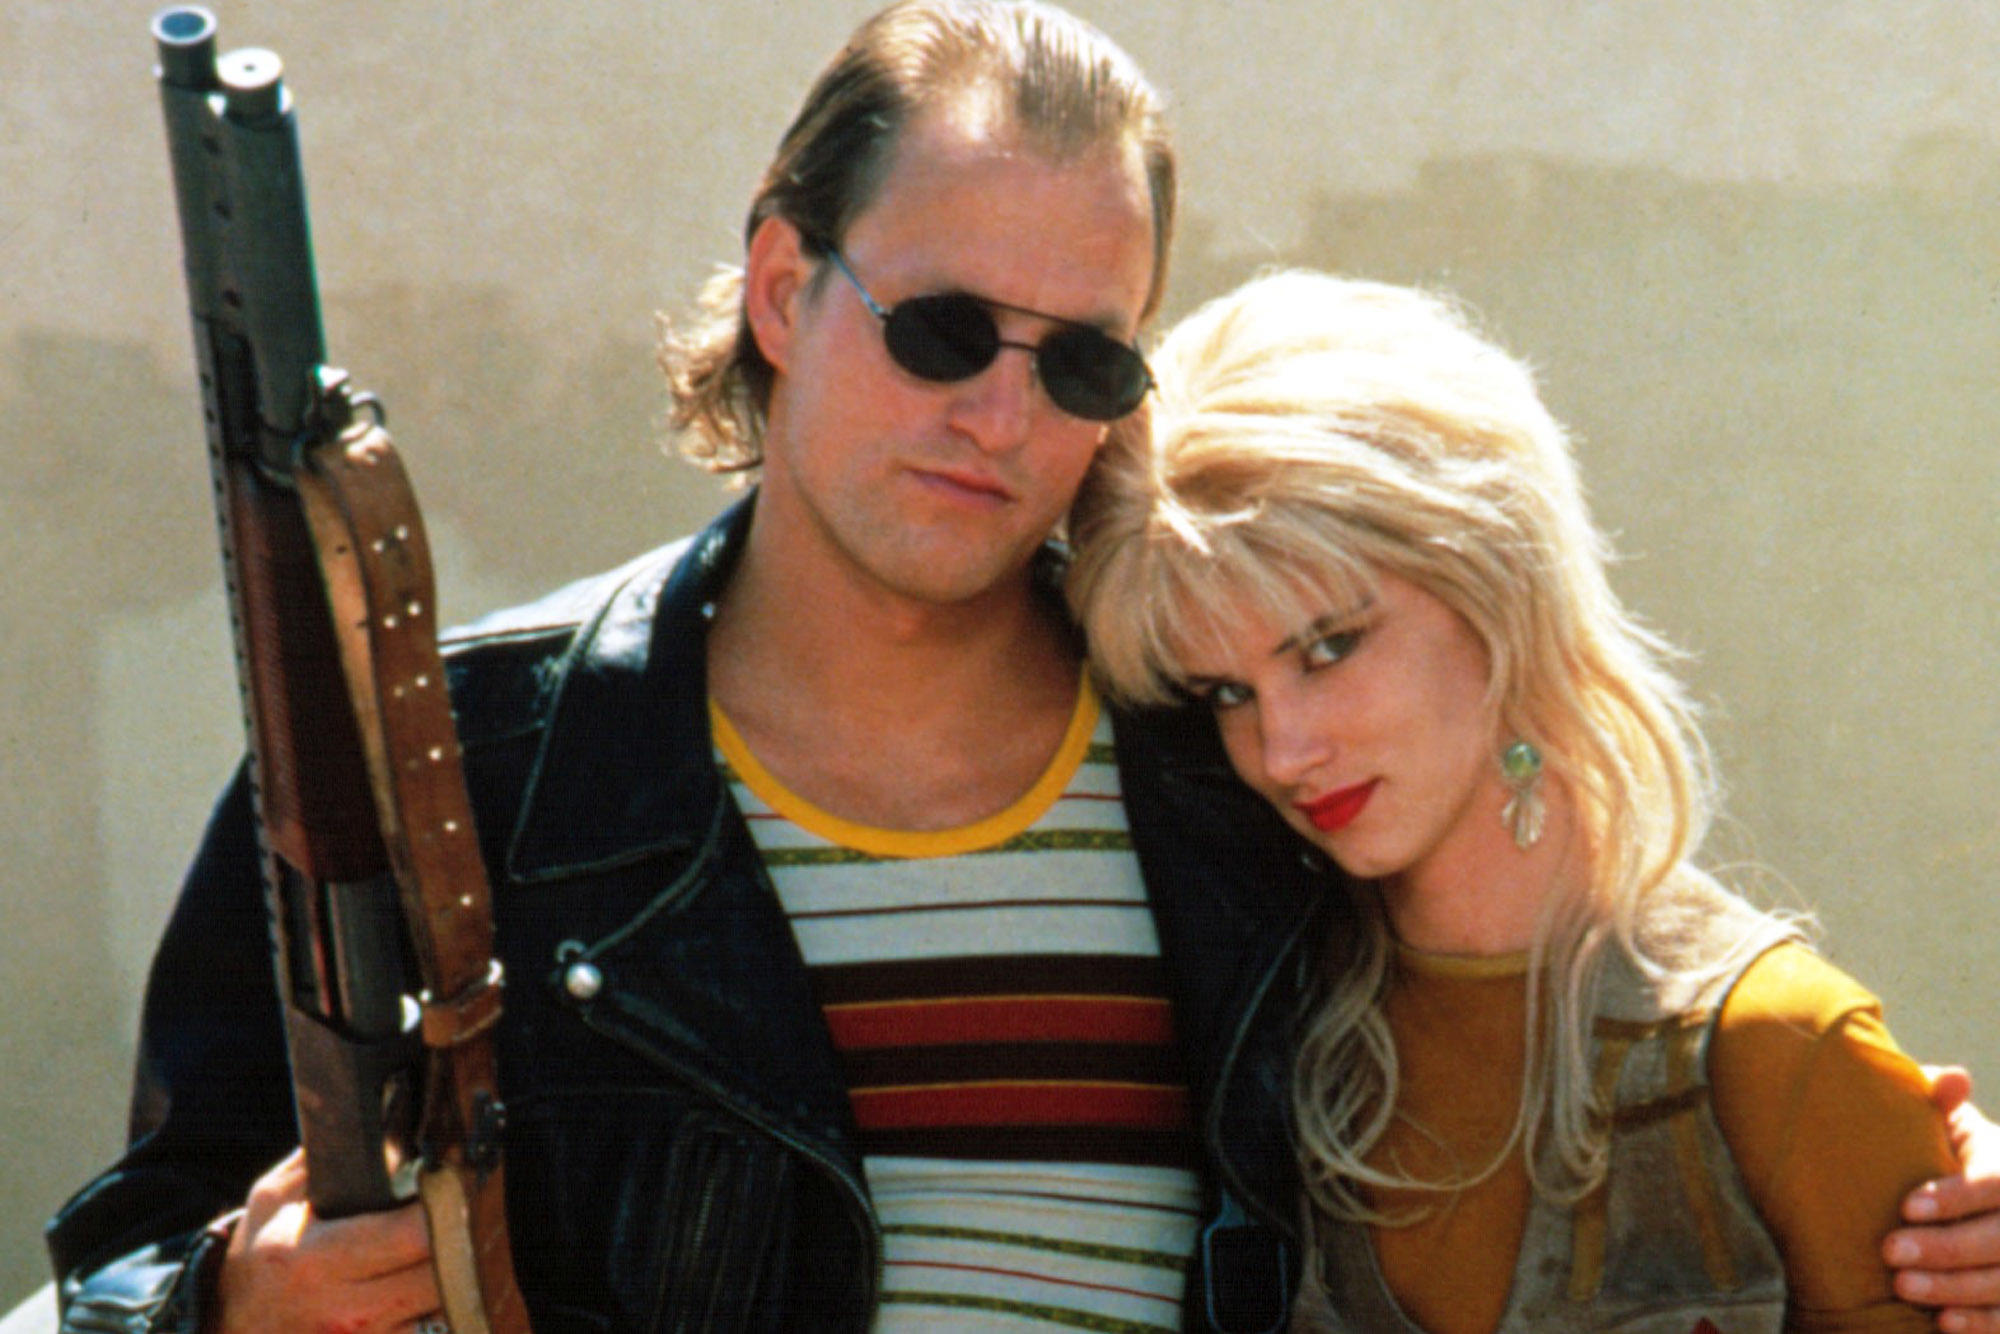 Mickey (Woody Harrelson) and Mallory Knox (Juliette Lewis) on a cross-country murder spree in Natural Born Killers (1994)